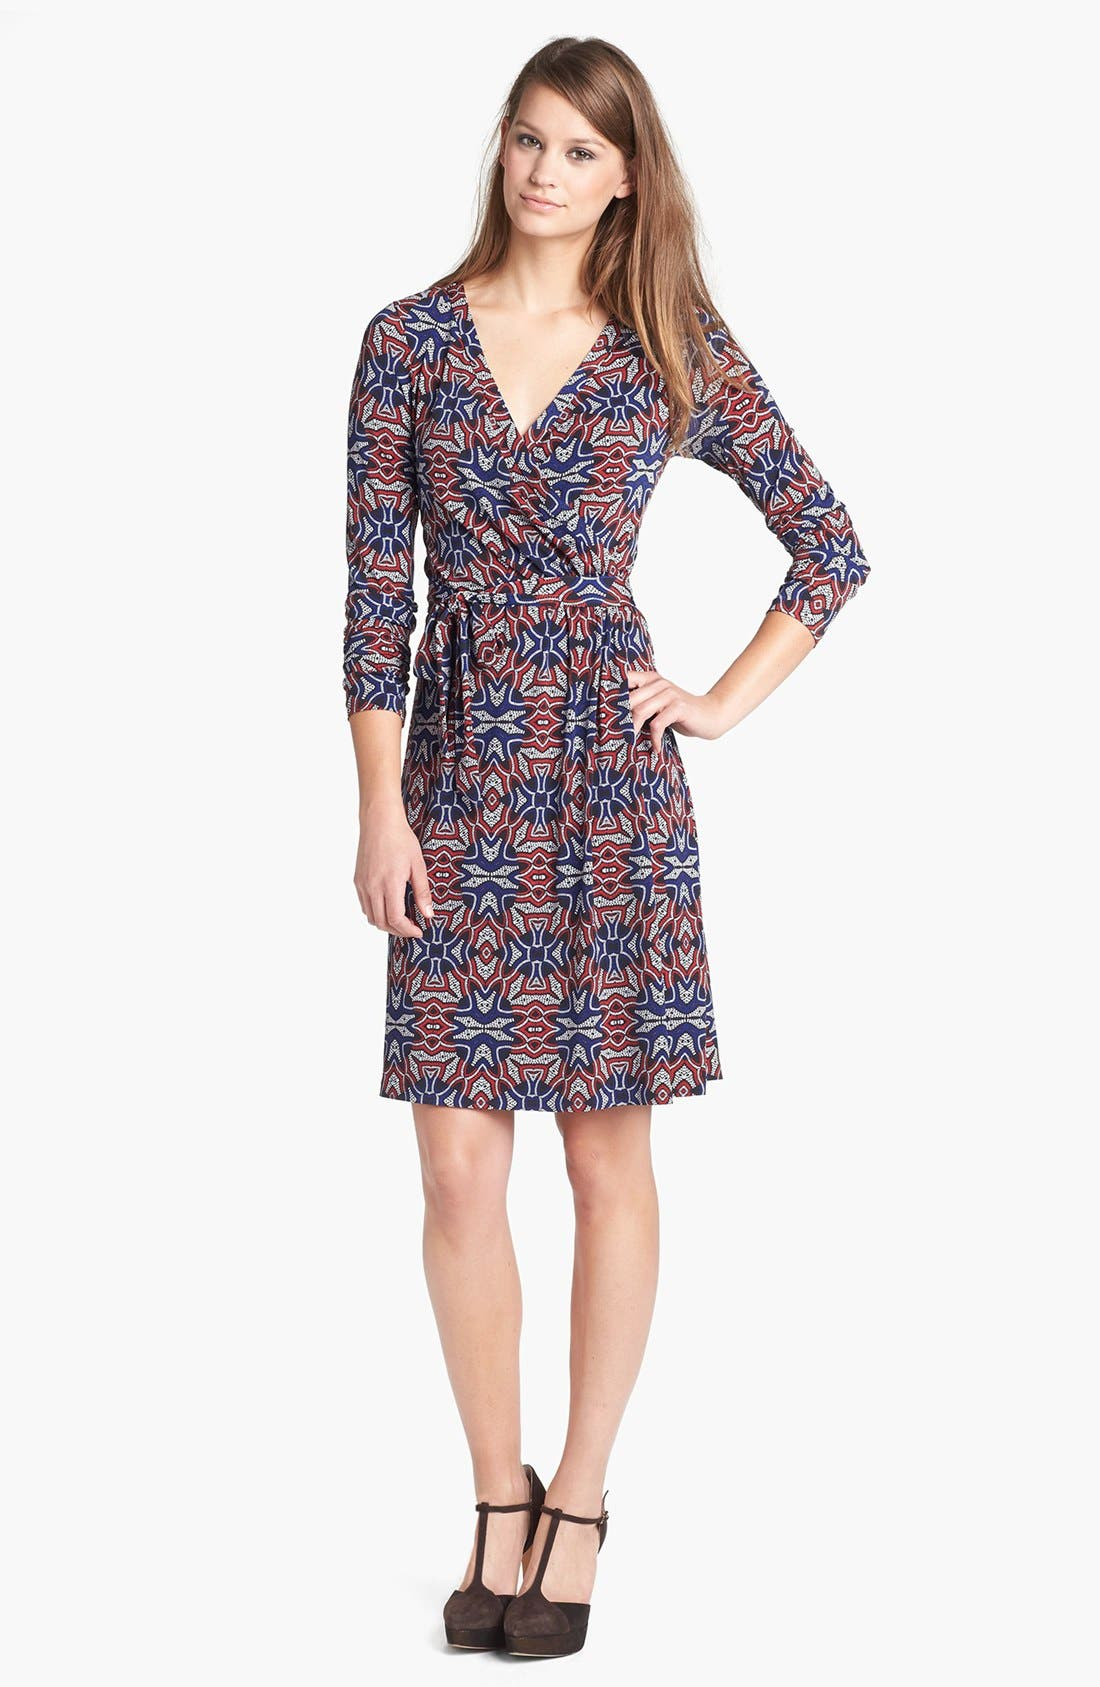 Alternate Image 1 Selected - Anne Klein Print Faux Wrap Dress (Petite)